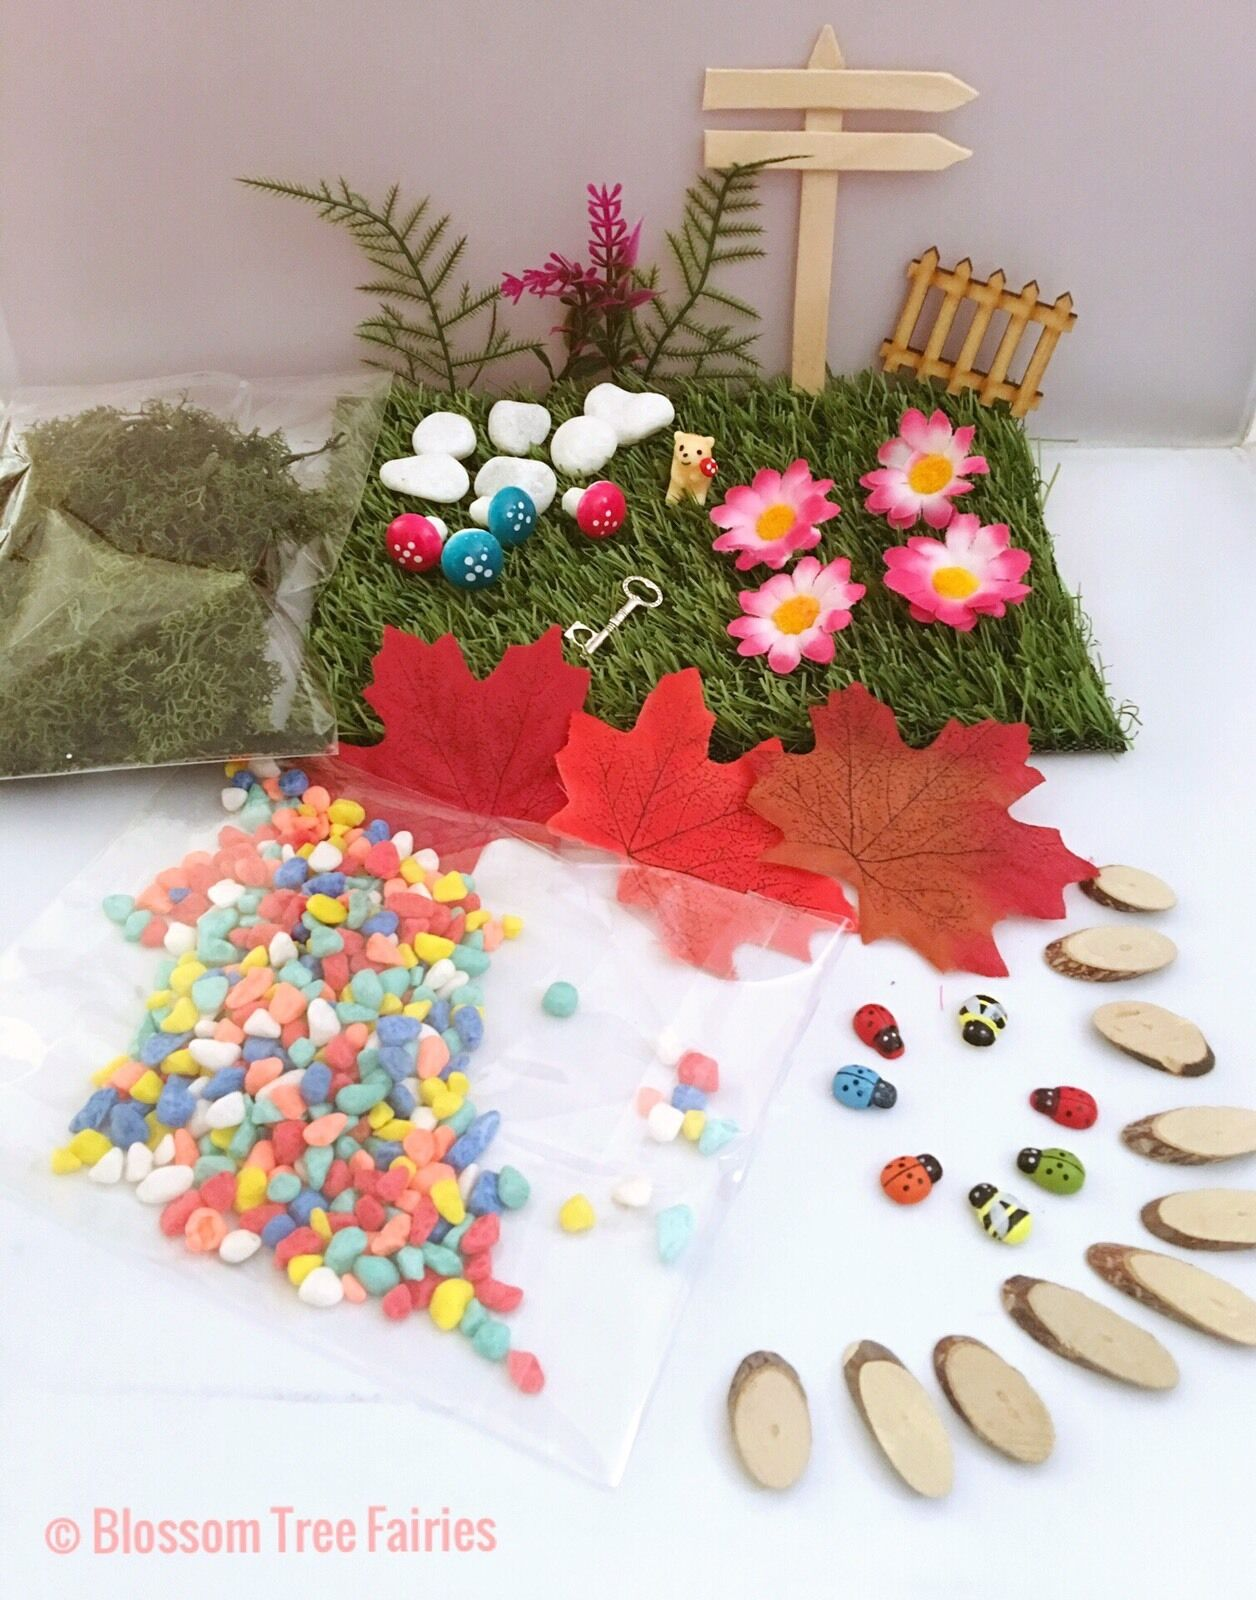 Fairy garden kit fairy door house accessory washing line for Fairy door kits canada